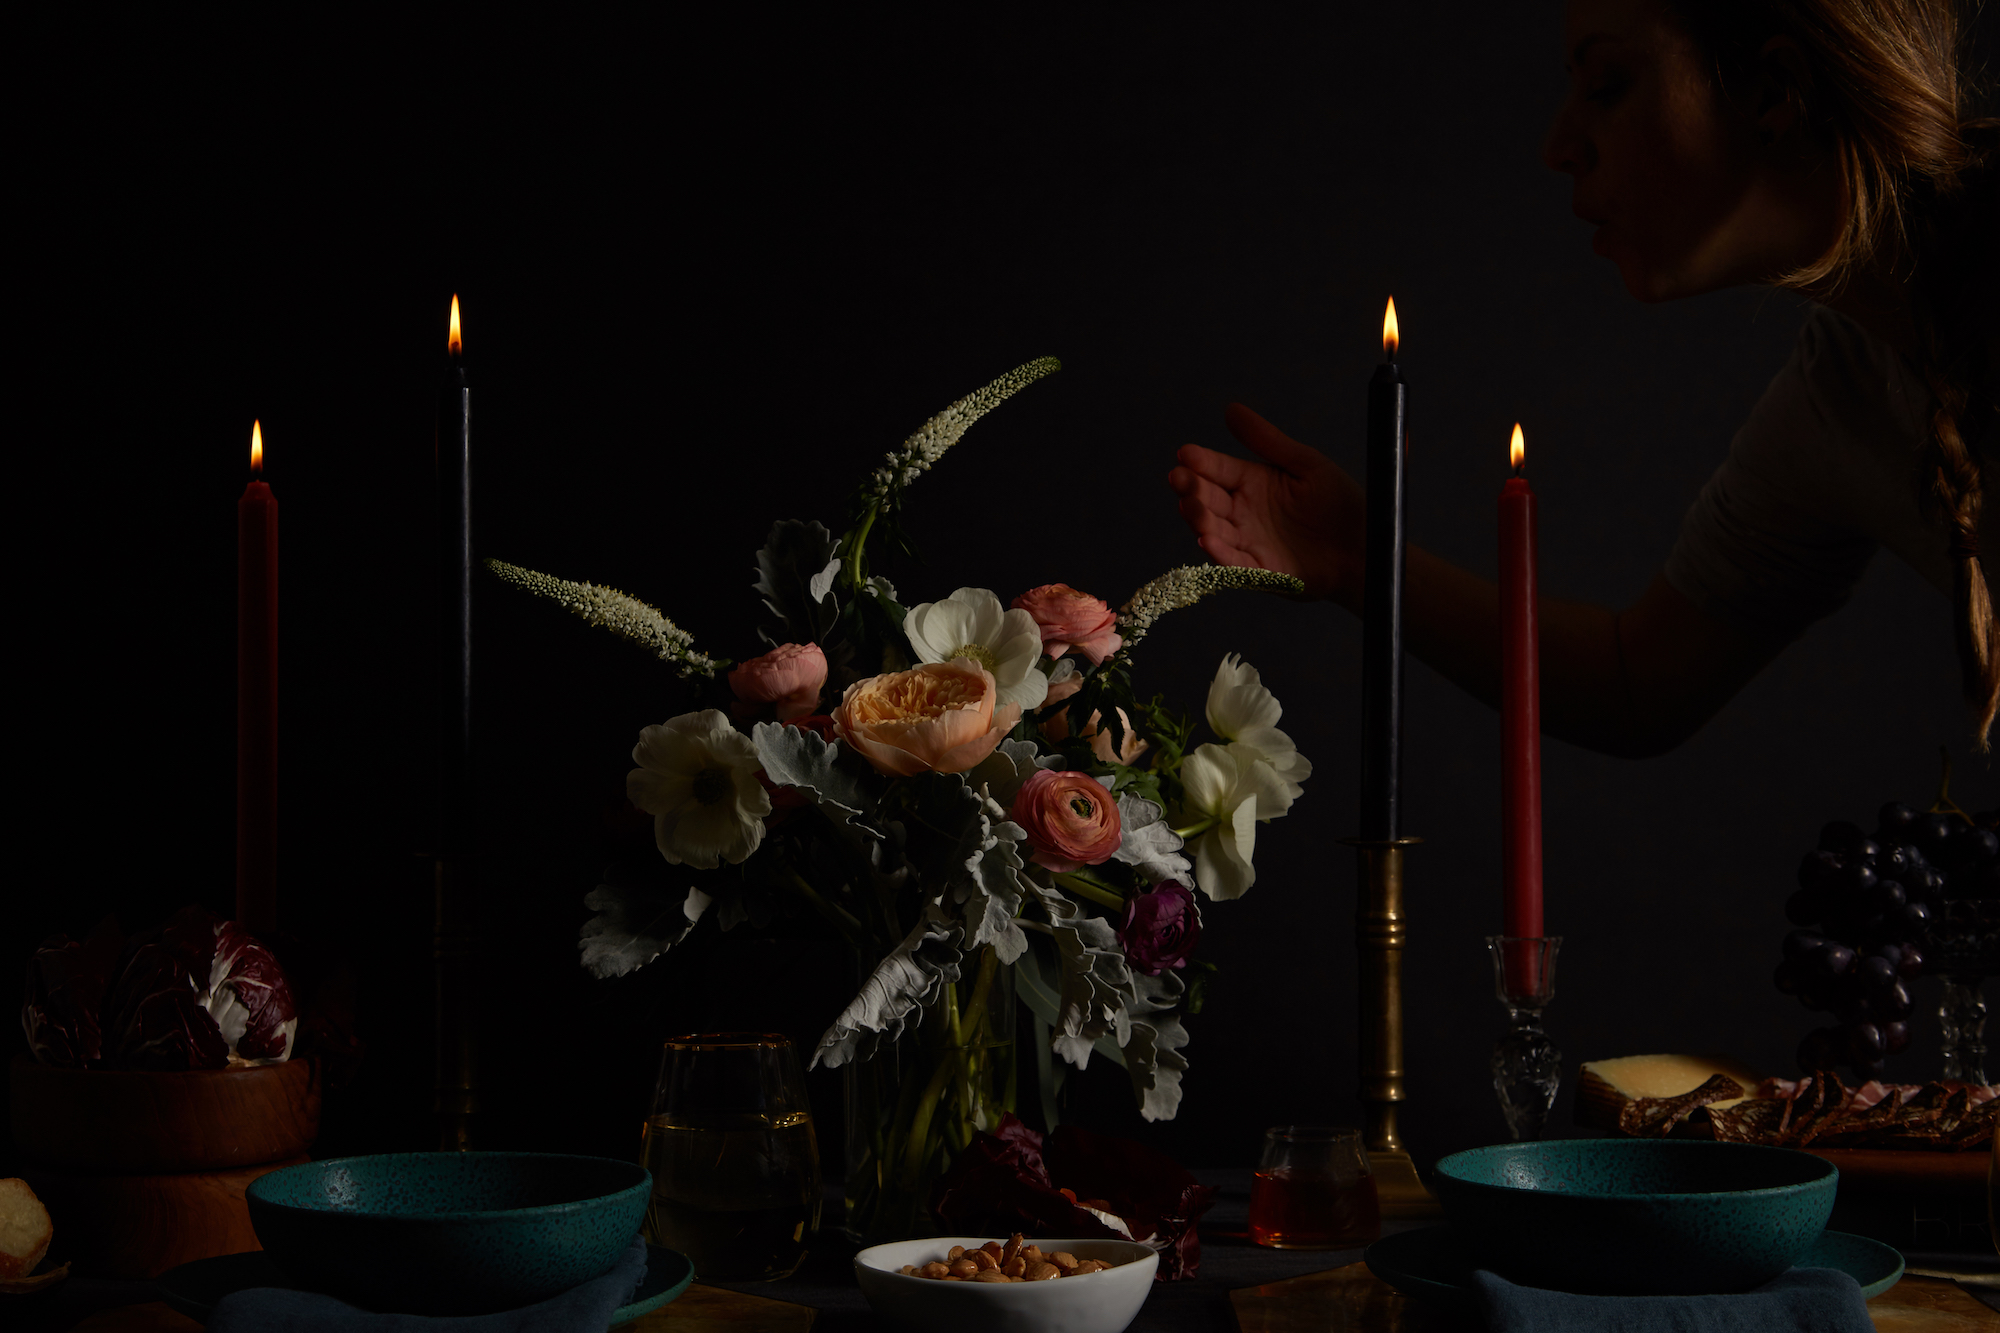 MOODY - PHOTOGRAPHY: ANDY IVESCREATIVE/ART DIRECTION: BUHO DESIGN + CO.PROP STYLING: BUHO DESIGN + CO.